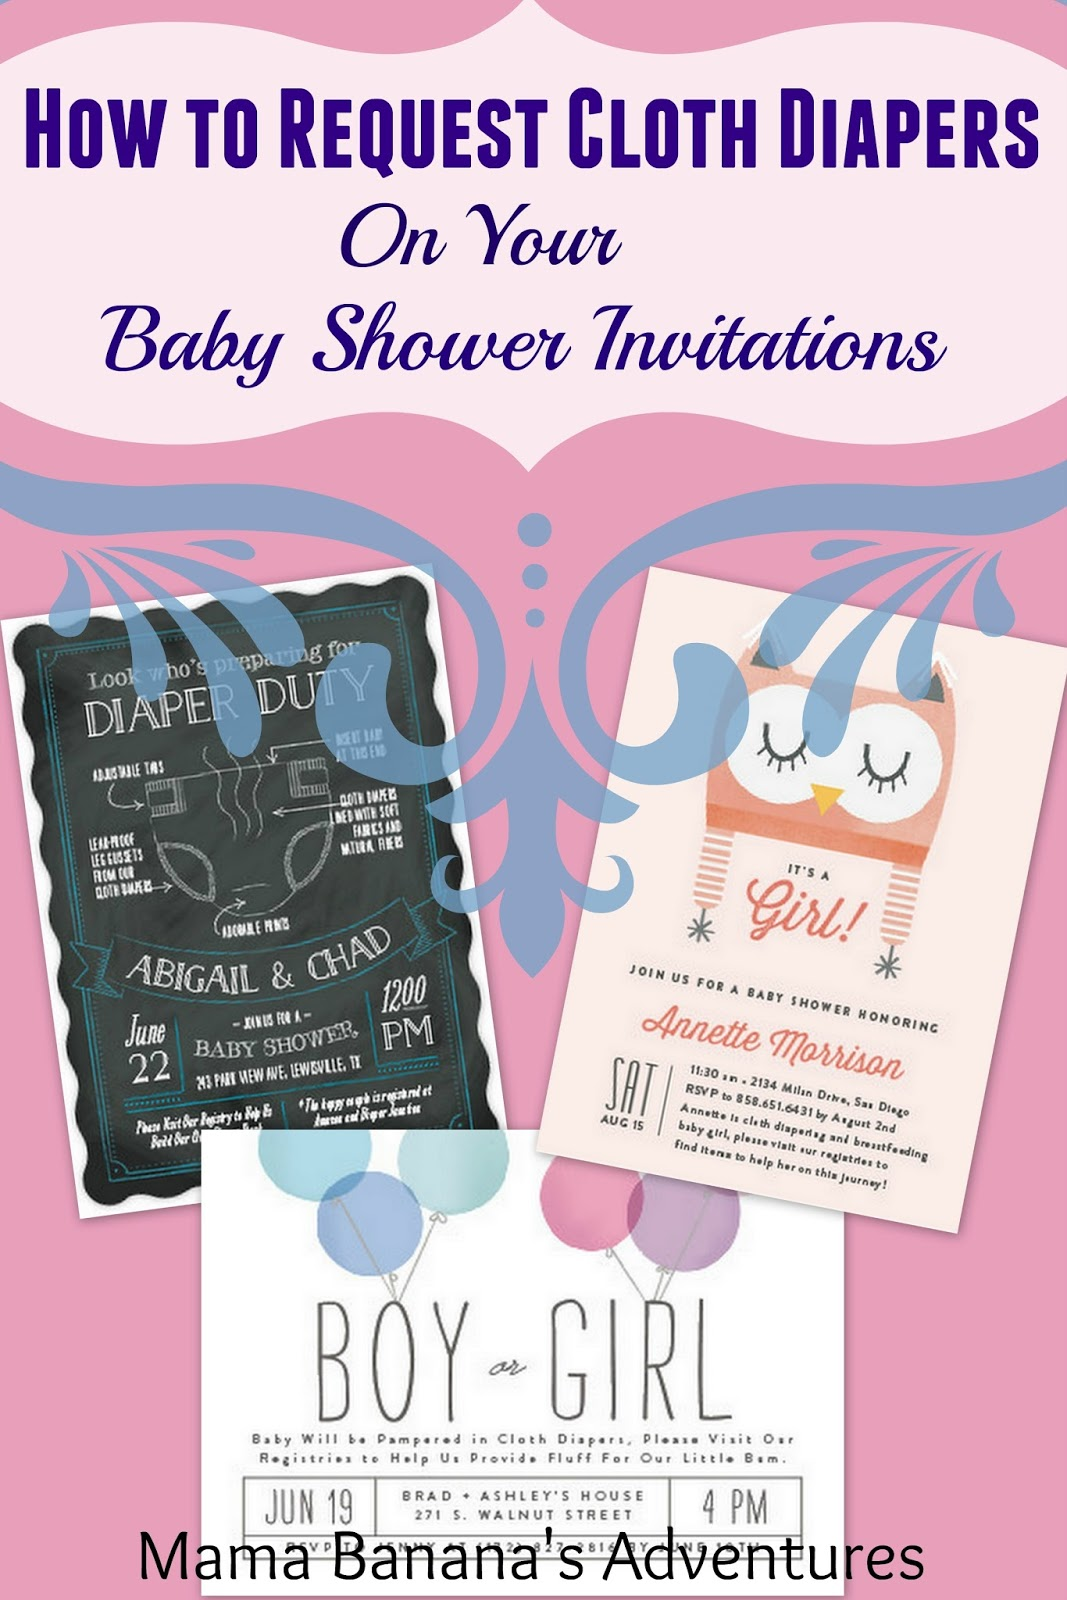 How to Request Cloth Diapers on Your Baby Shower Invitations with